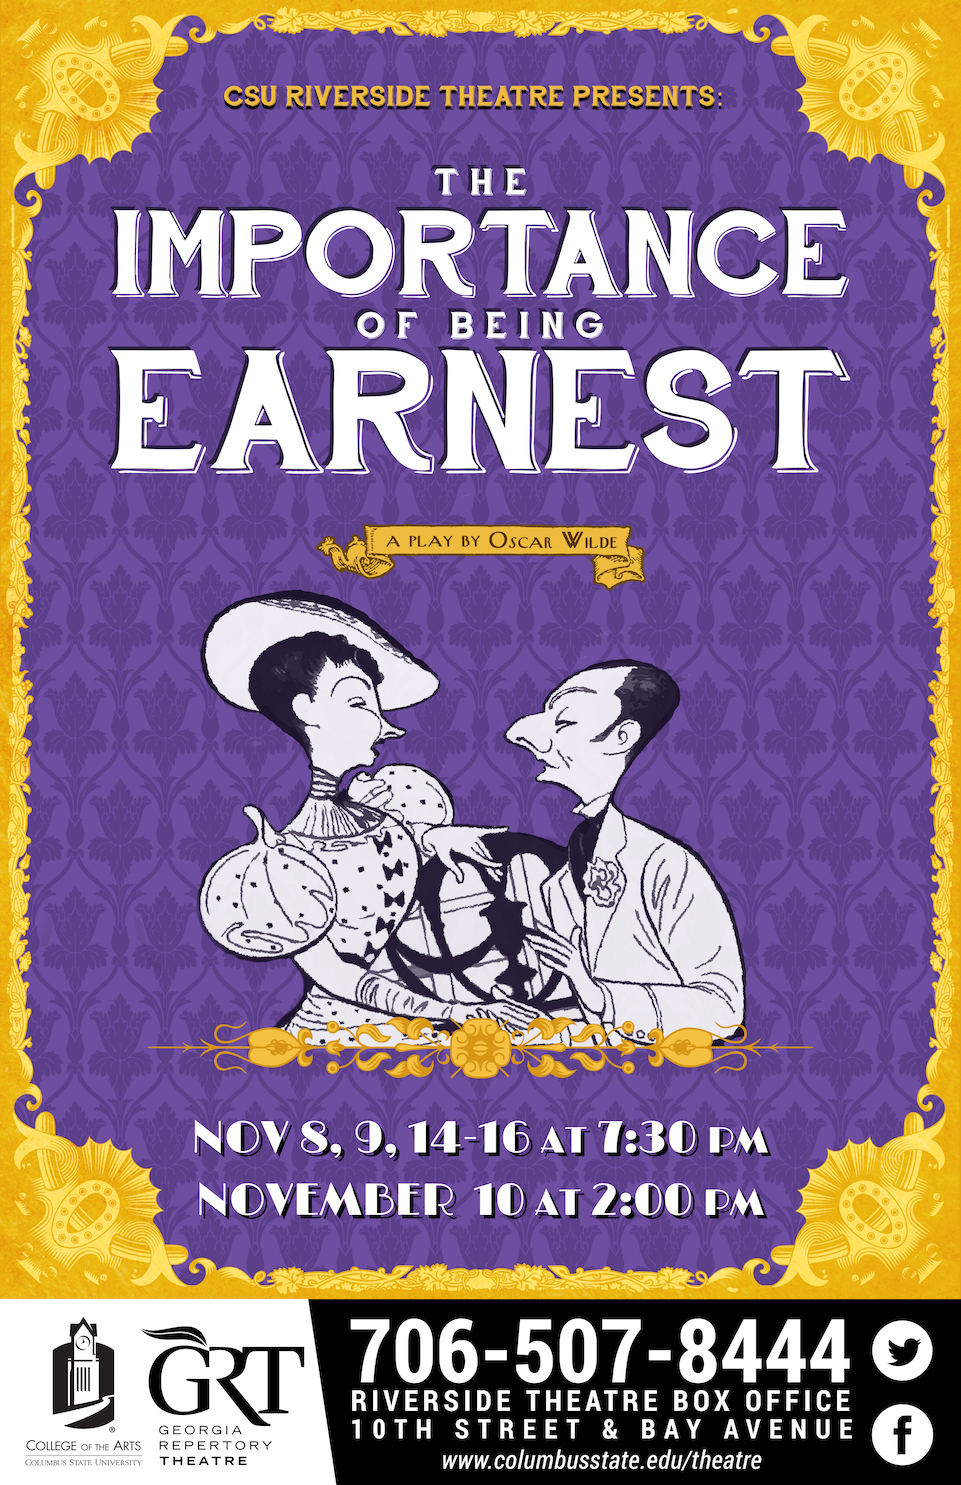 CSU Theatre—The Importance of Being Earnest